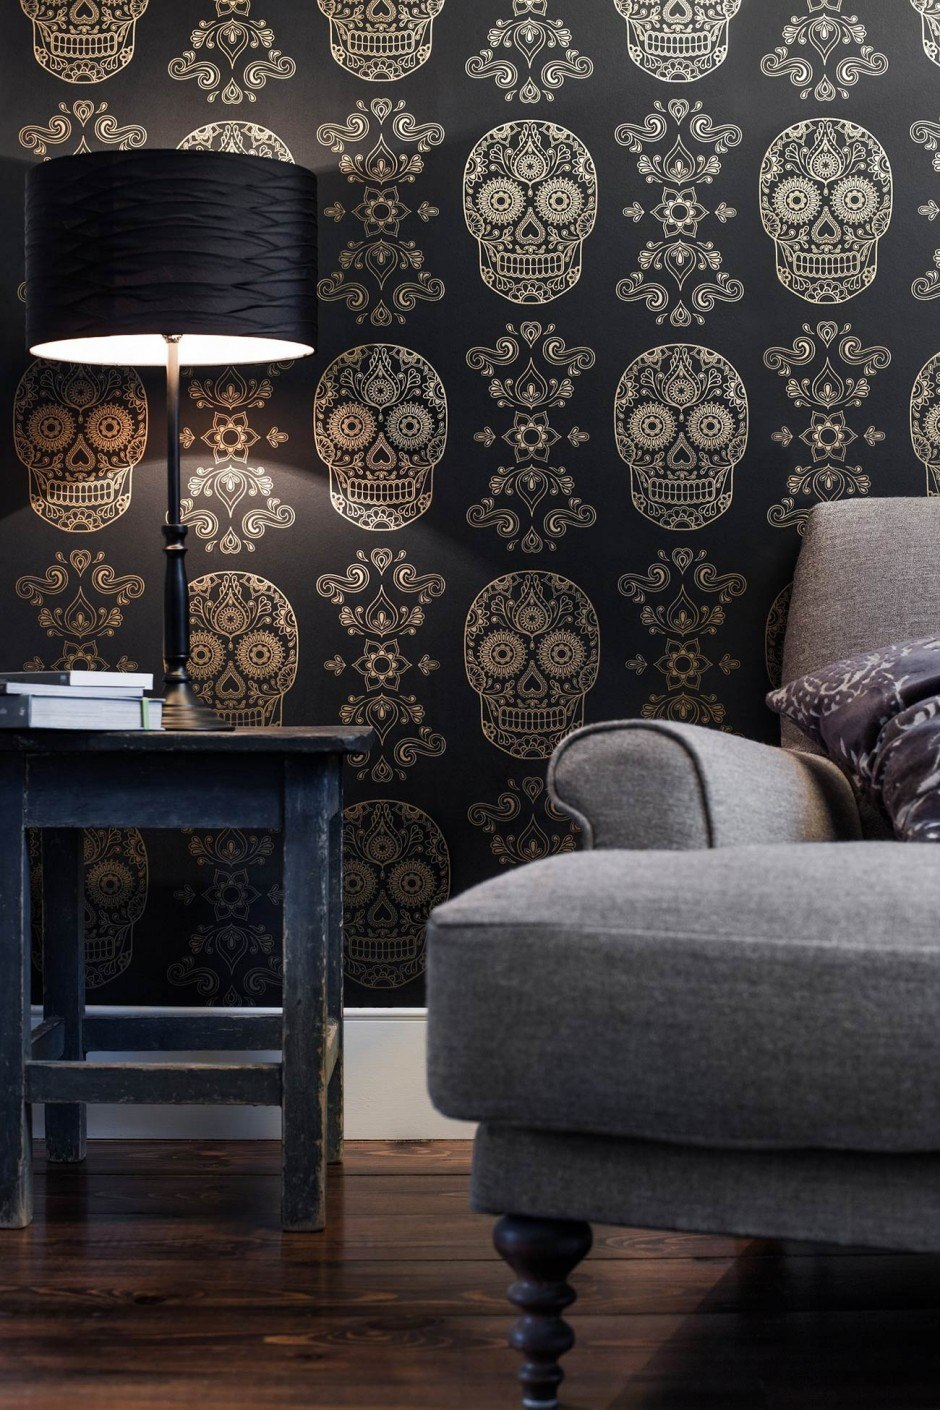 Anatomy Boutique, Sugar Skull Wallpaper (Gold & Black) 2013. Flexographic Printing, www.anatomyboutique.com